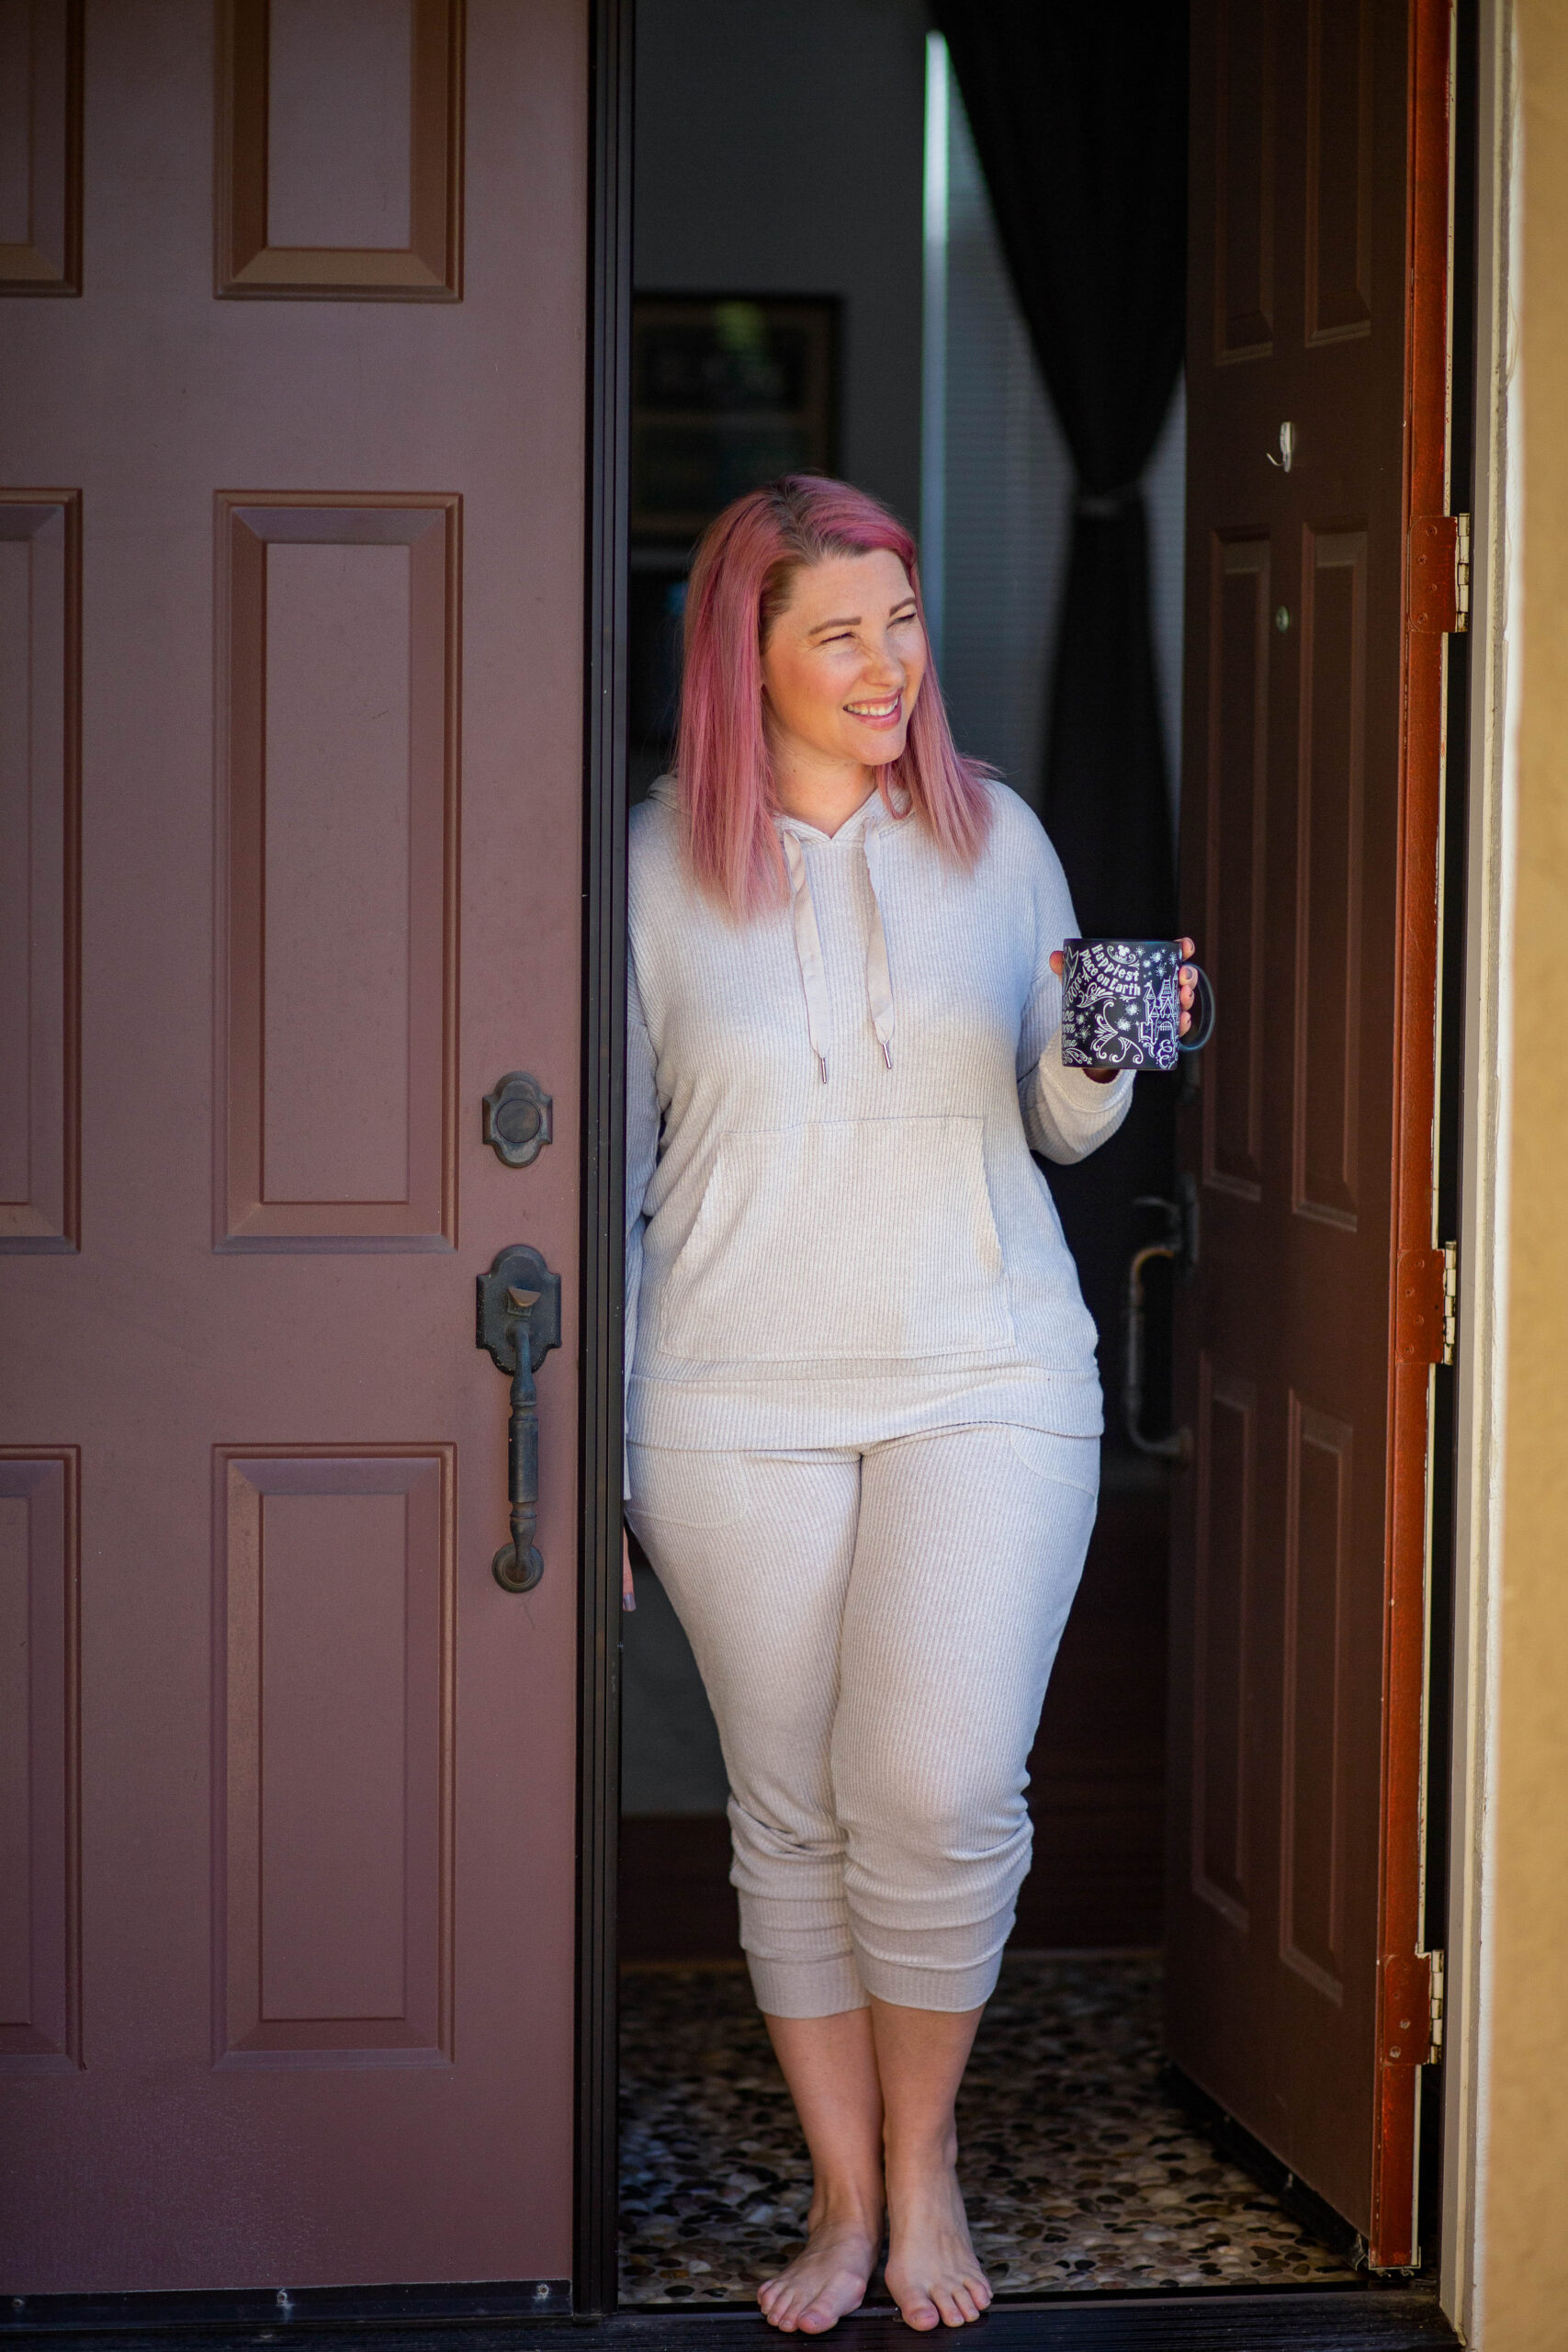 This ribbed sweatsuit is PERFECTION for winter days!